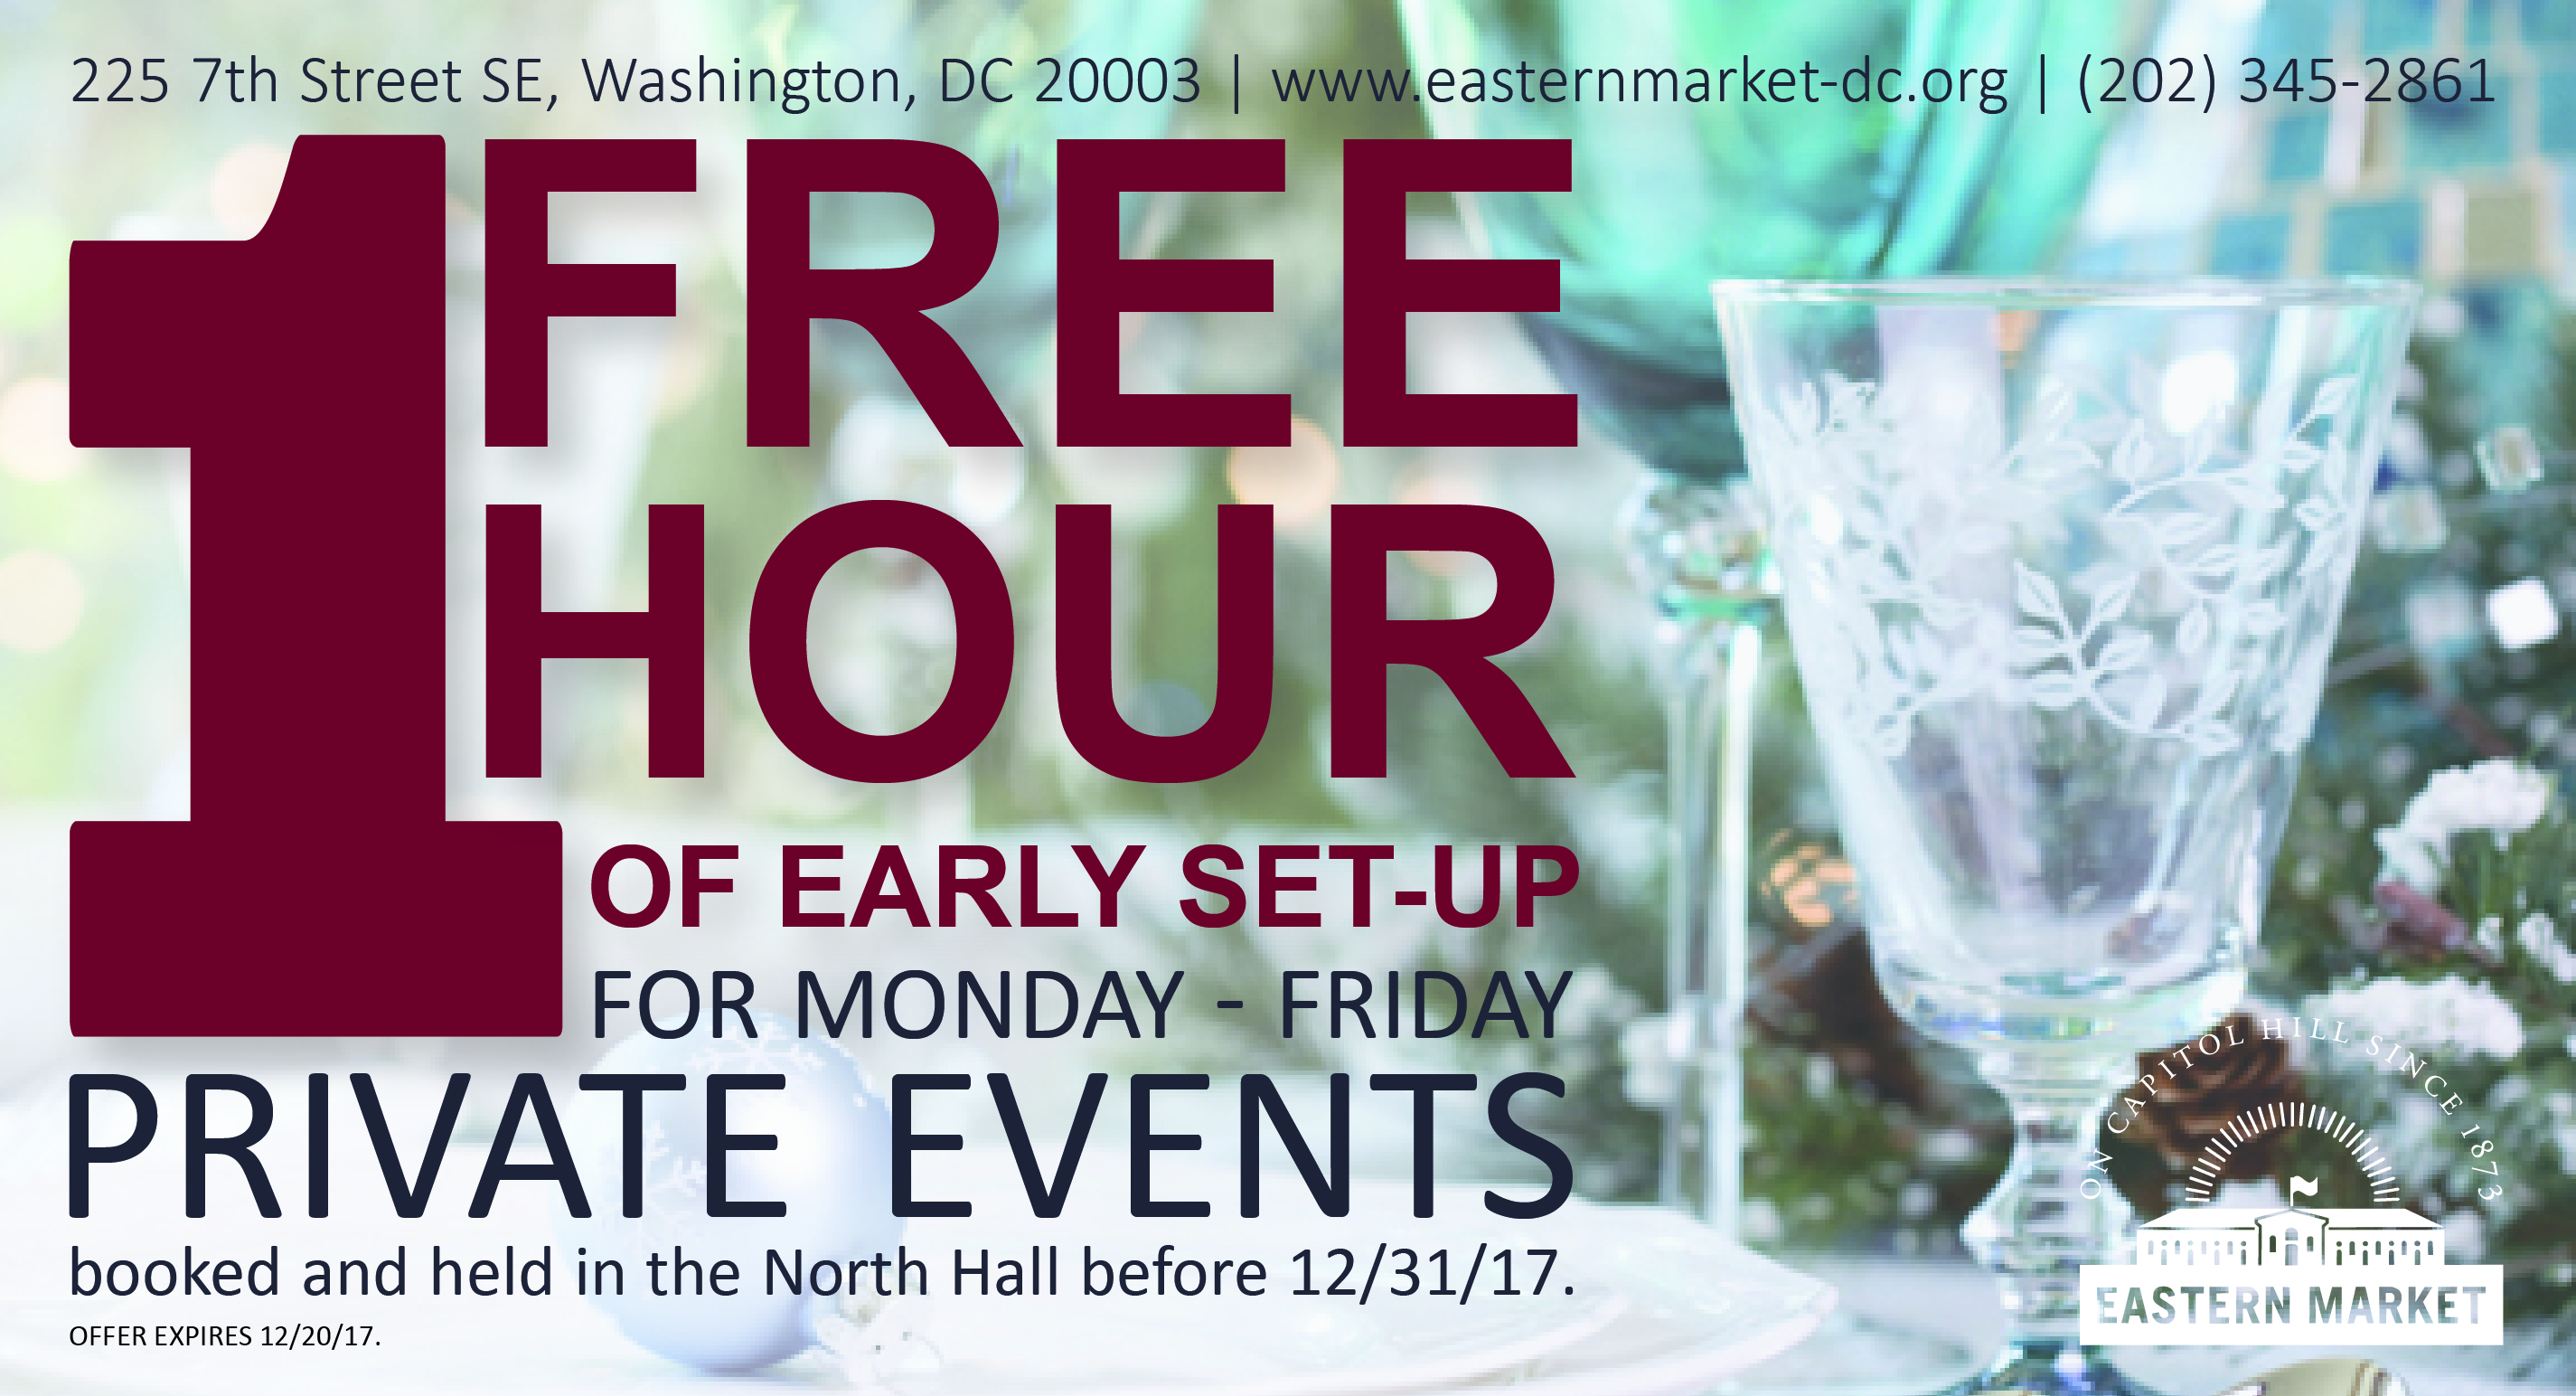 North-Hall_Winter-Special_1 free hour_2-01